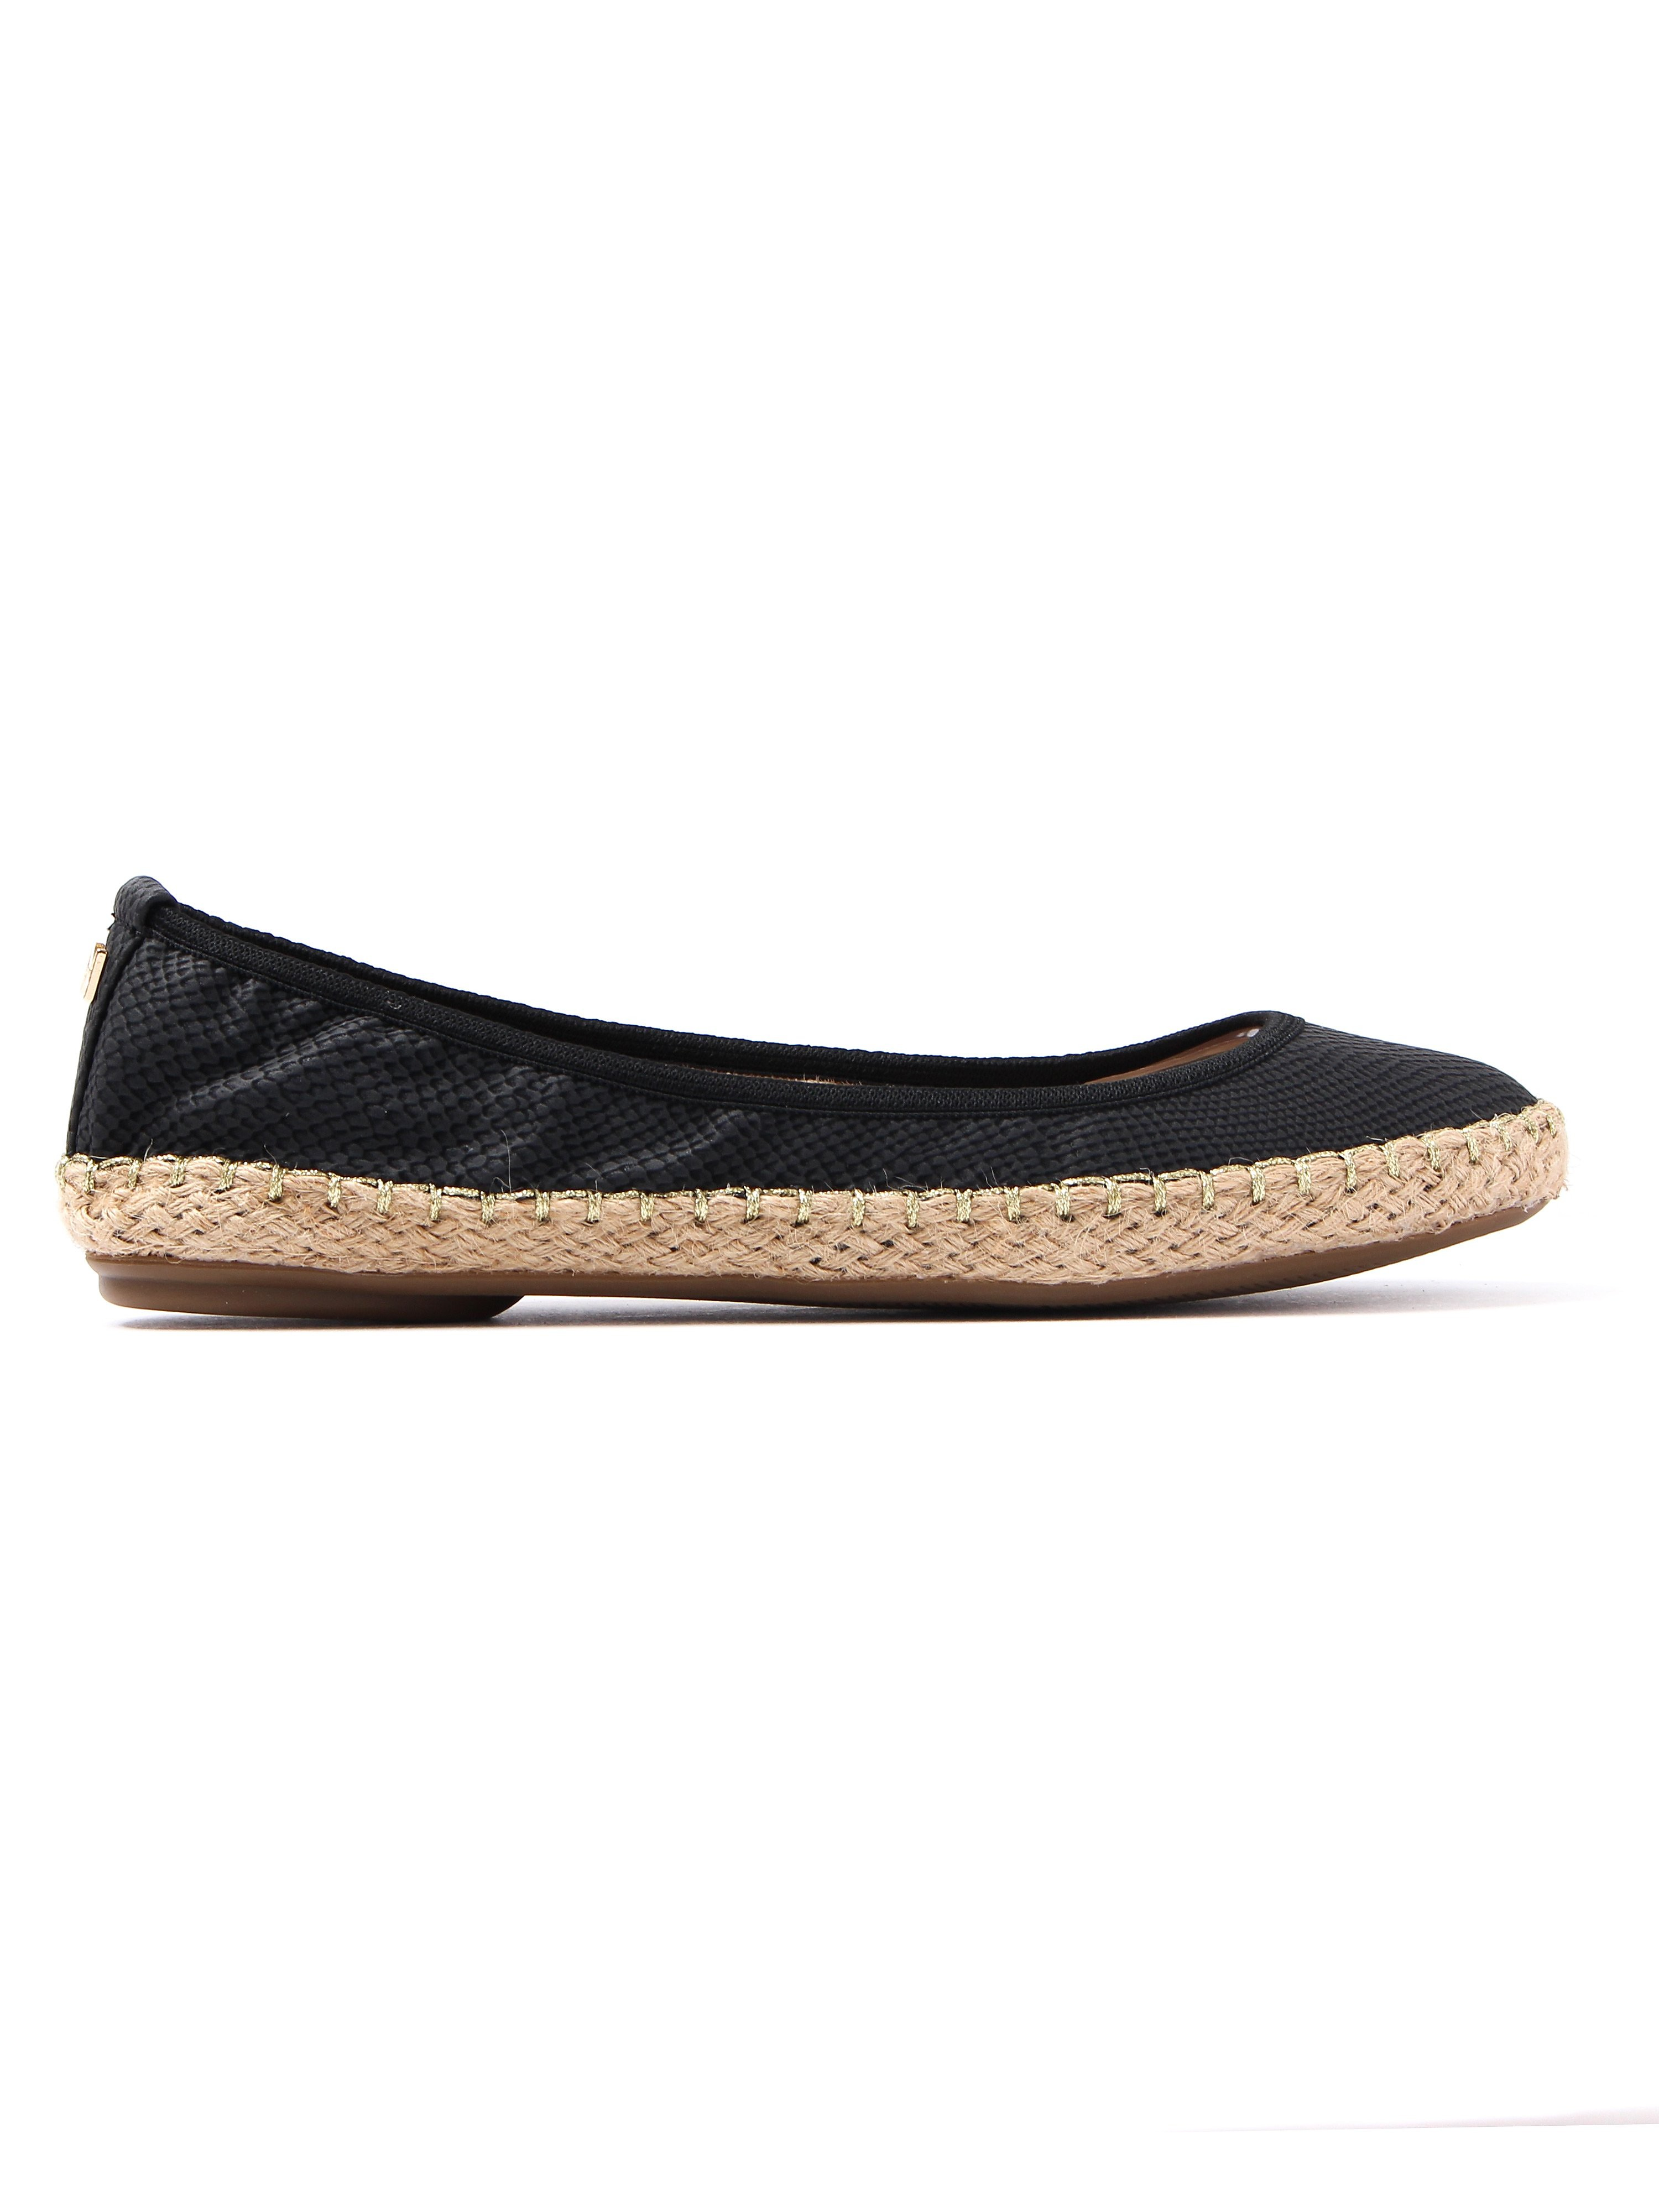 Butterfly Twists Women's Gigi Snake Foldable Ballerina Pumps - Black